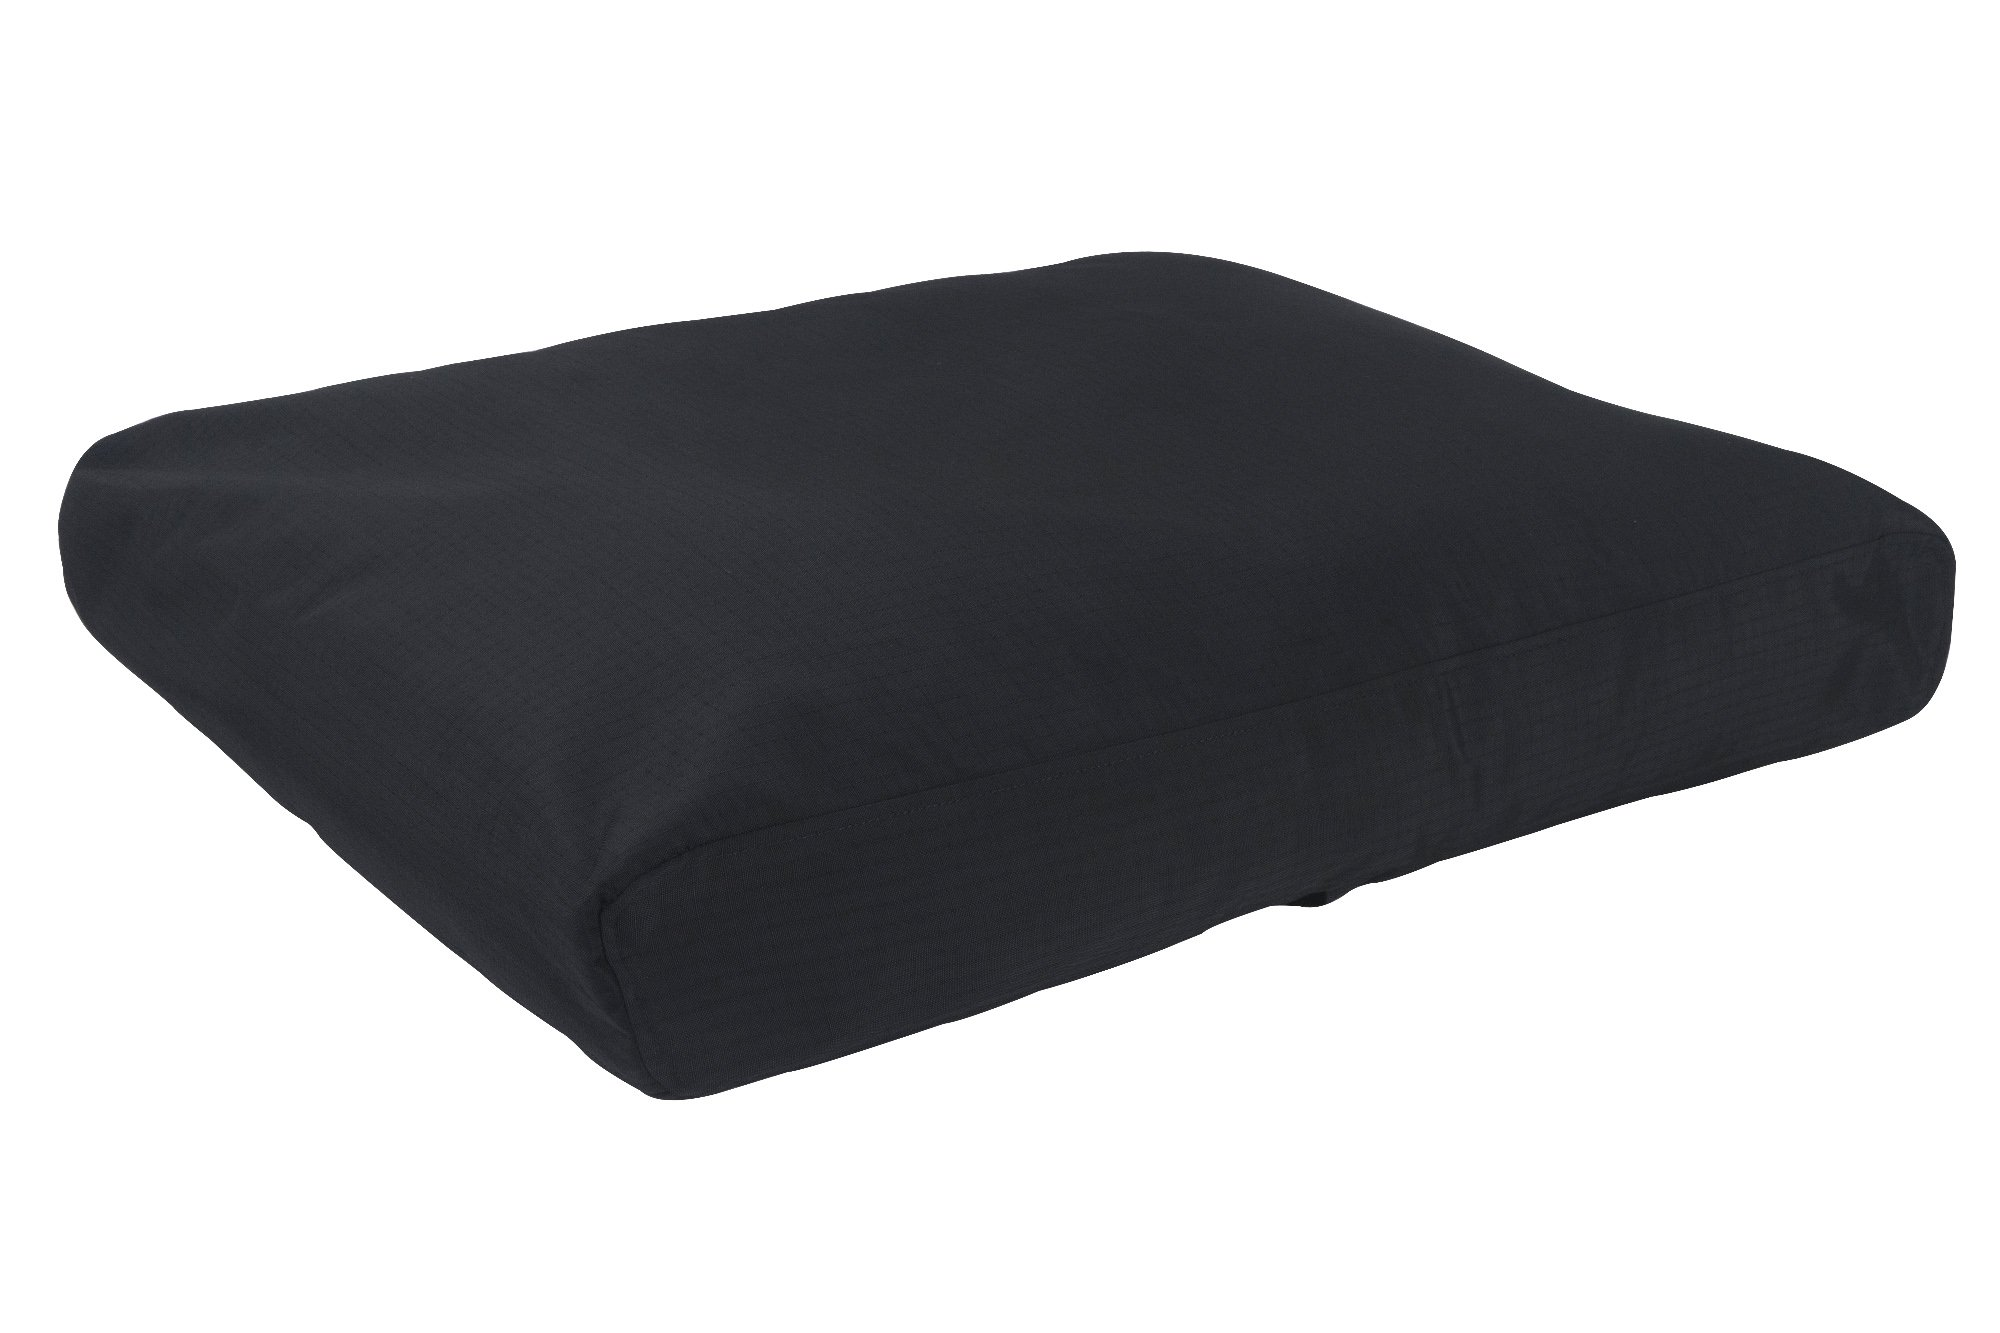 K9 Ballistics Original TUFF Bed Black - Large (34''x40''x5'')